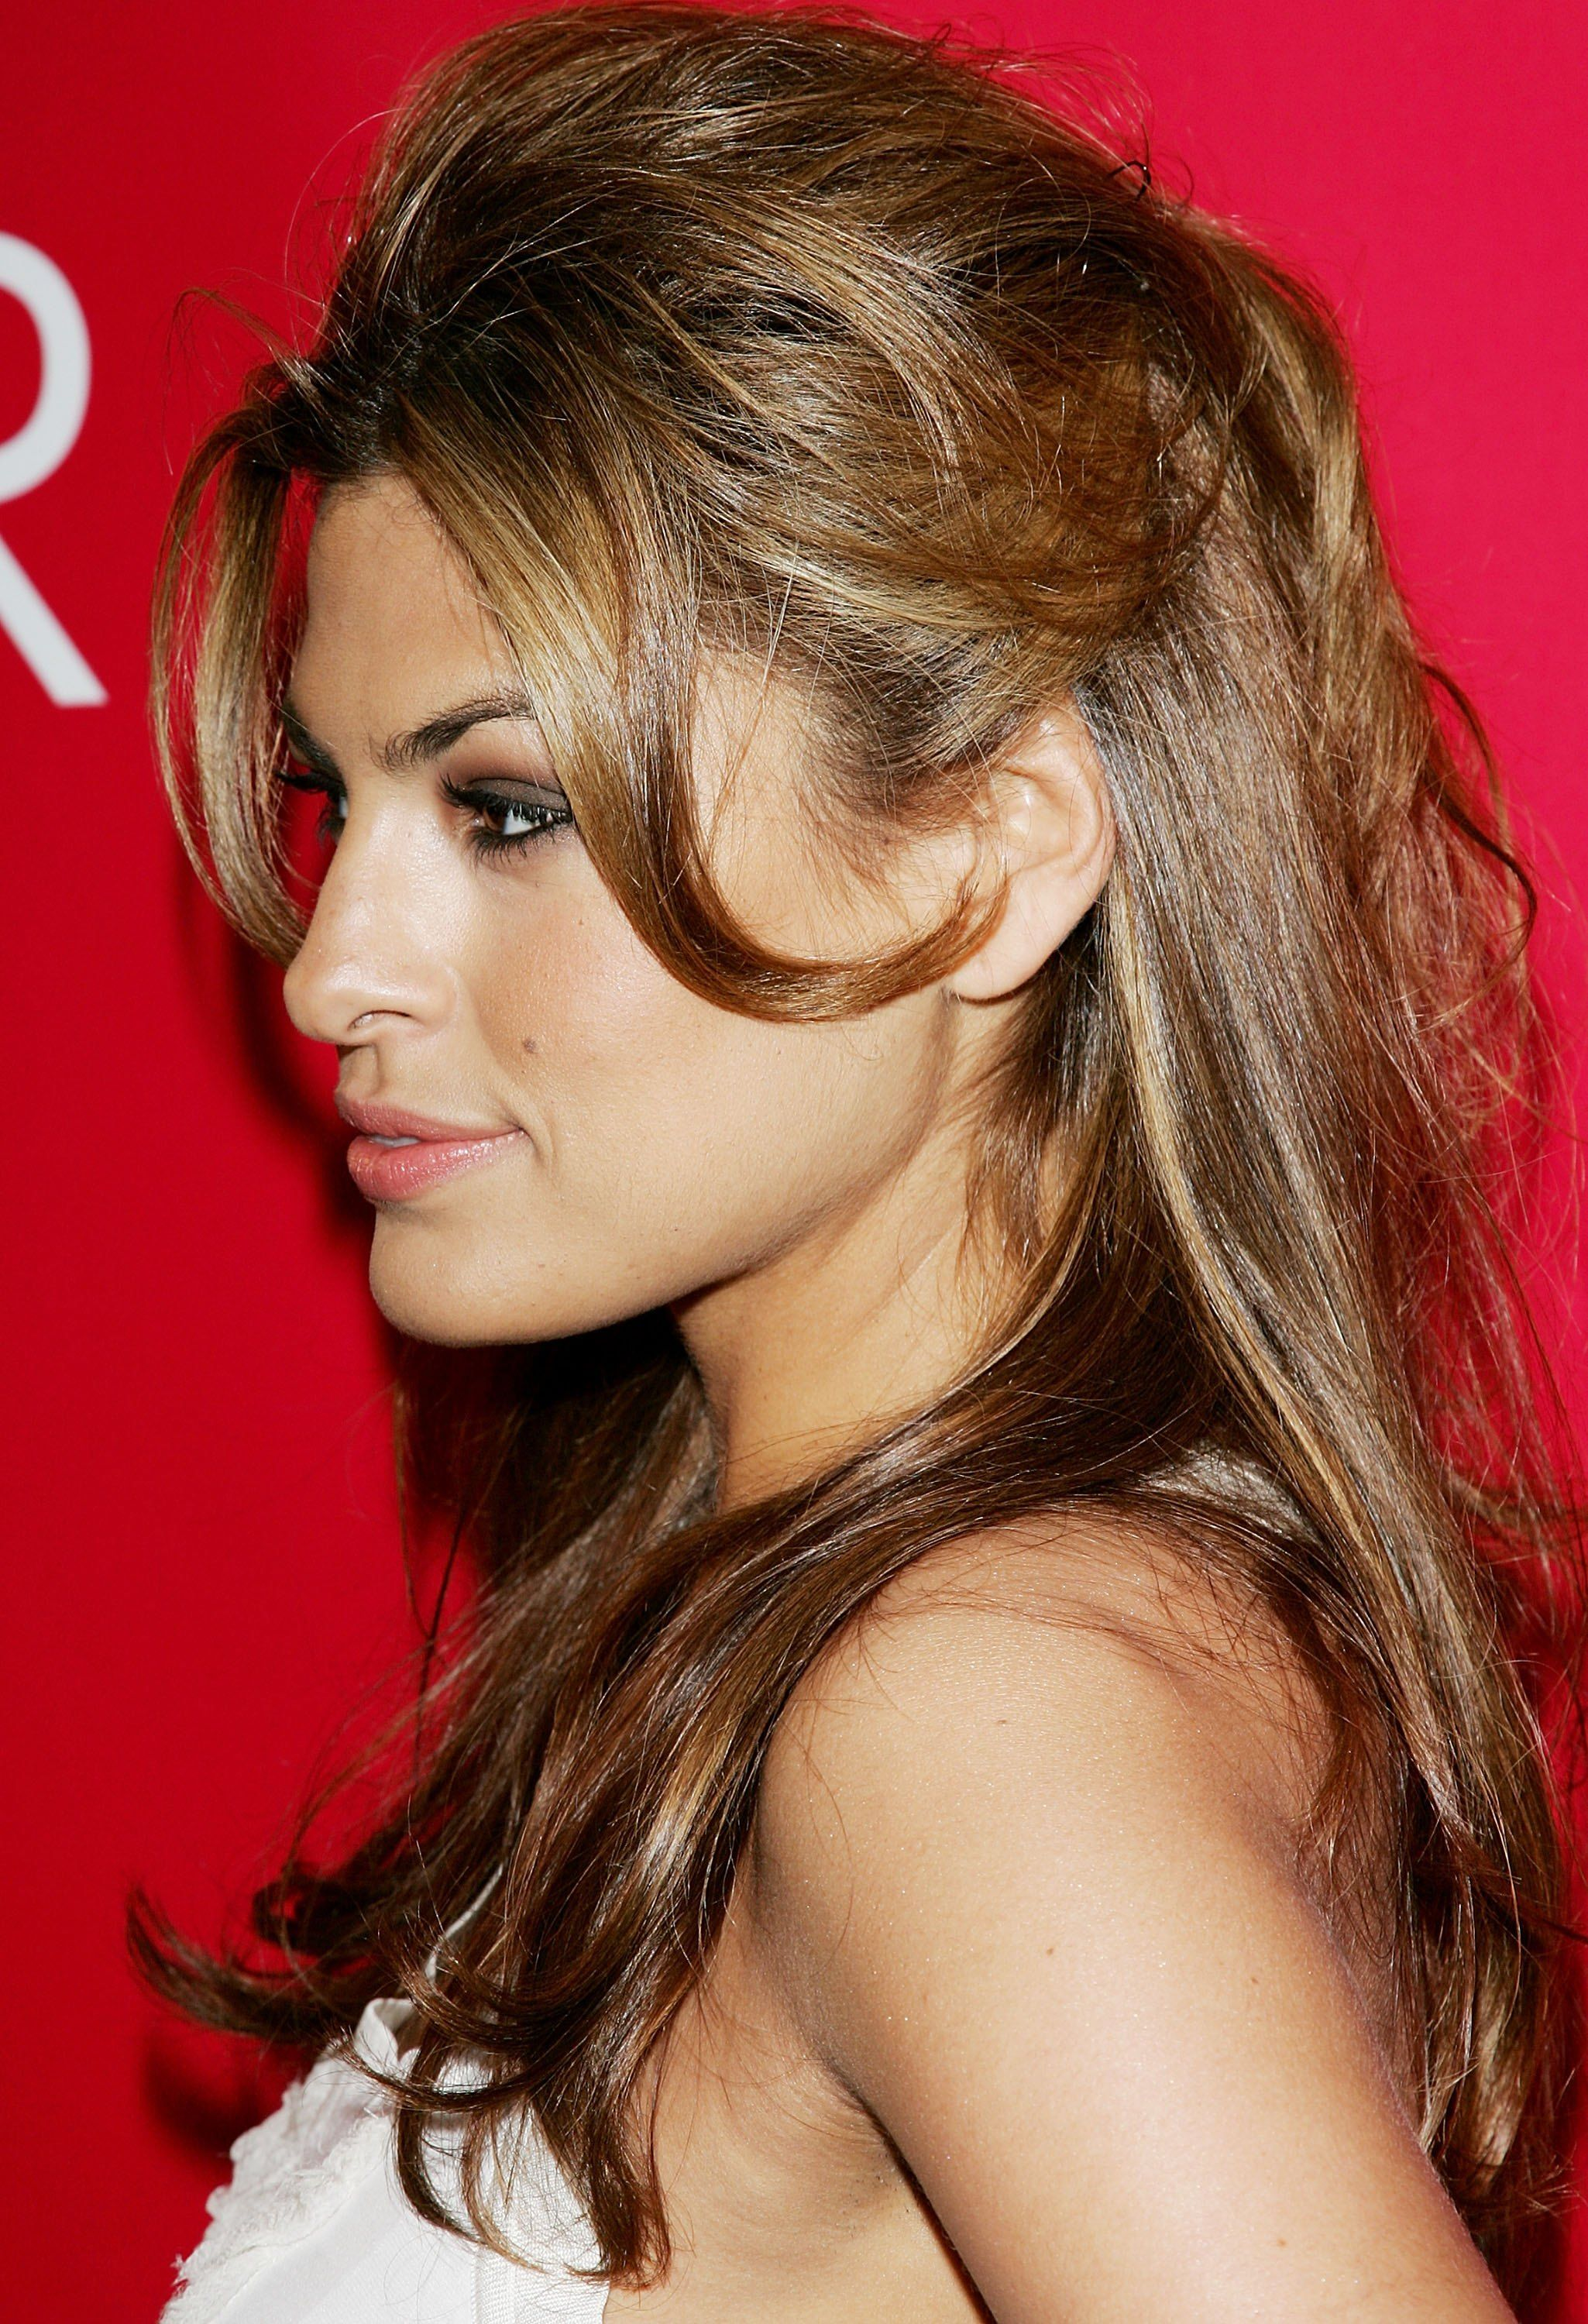 Eva Mendes Easy Long Layered Hairstyle for Straight Hair Eva Mendes Easy Long Layered Hairstyle for Straight Hair new picture